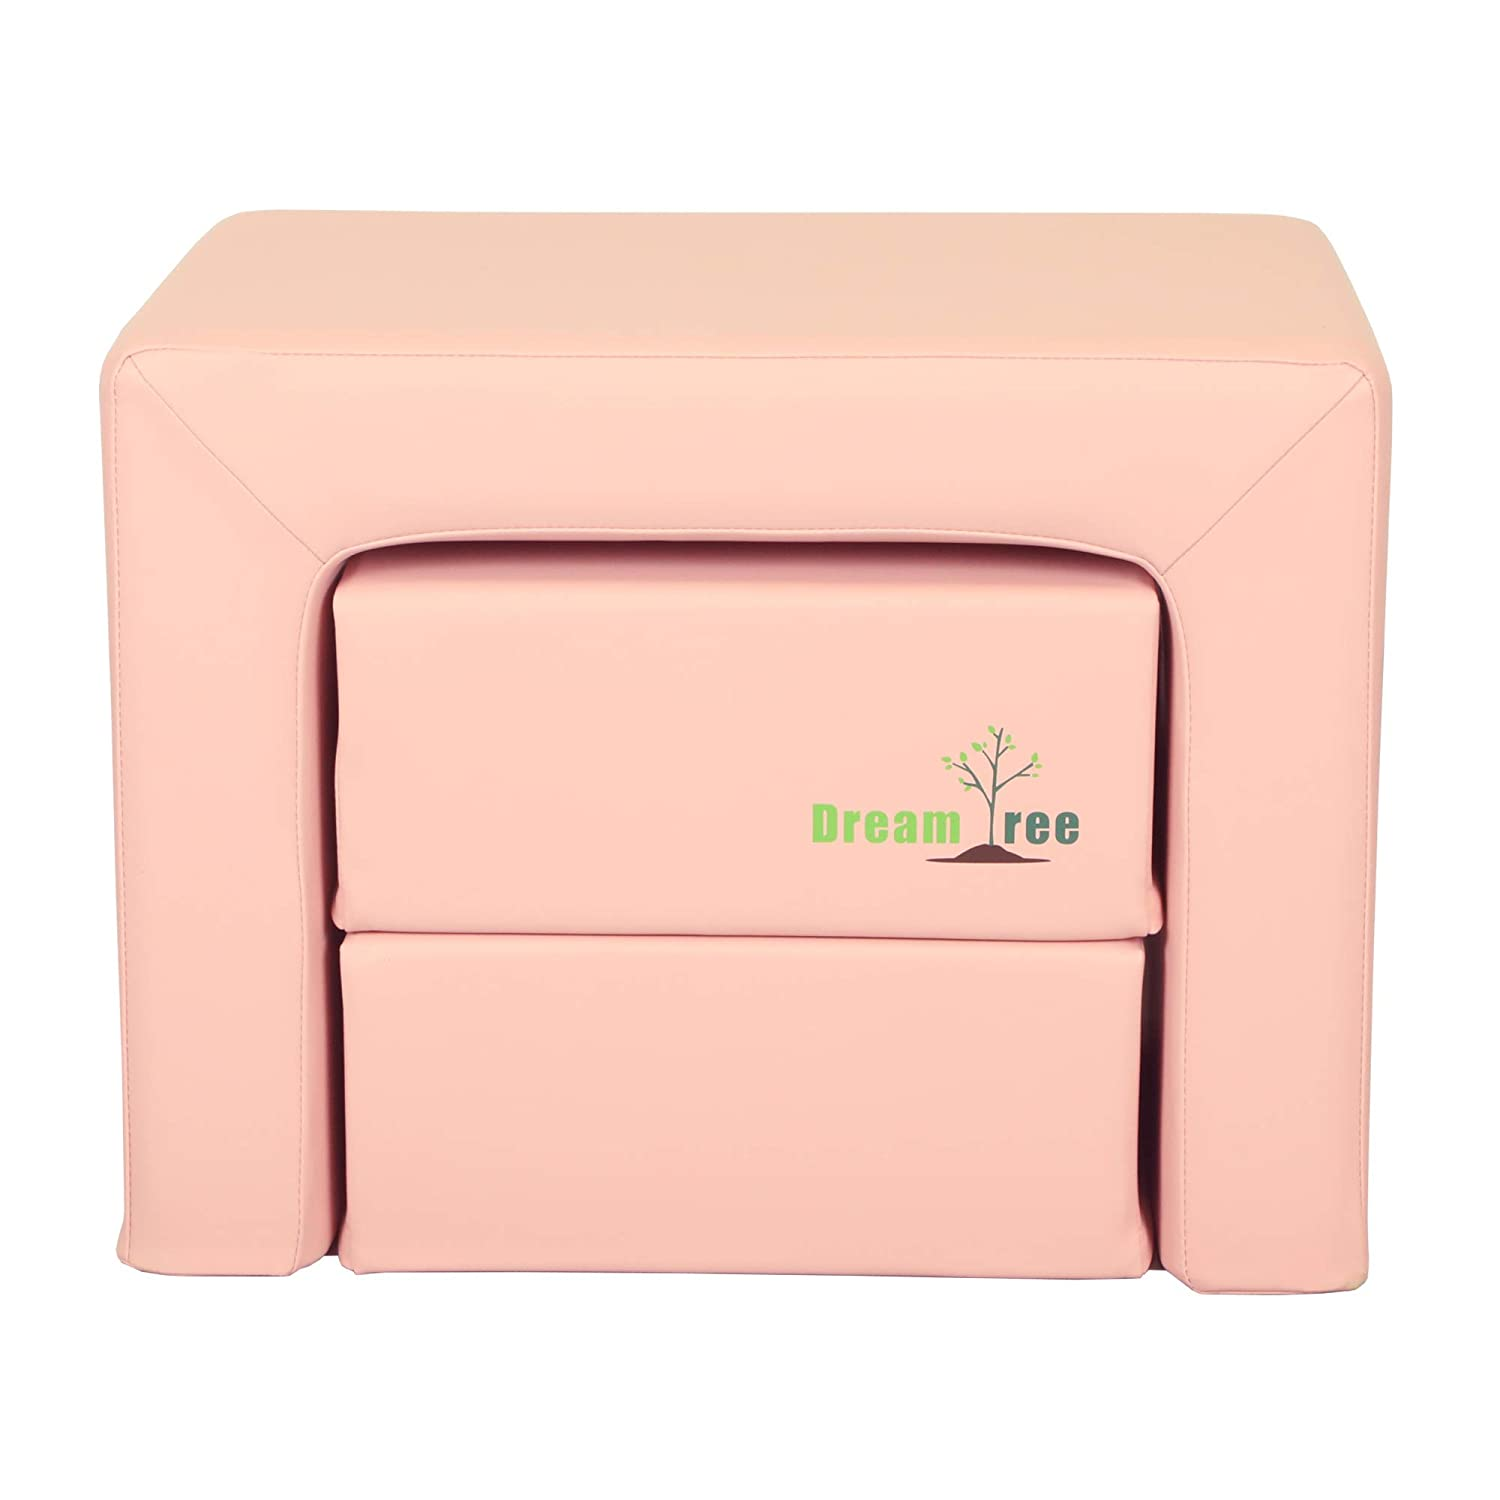 and Child Pink Dream Tree Toddler Table and Chair Set Kids Washable Stool Type Safe Non-Toxic CPSIA Compliant Soft Foam Furniture for Baby